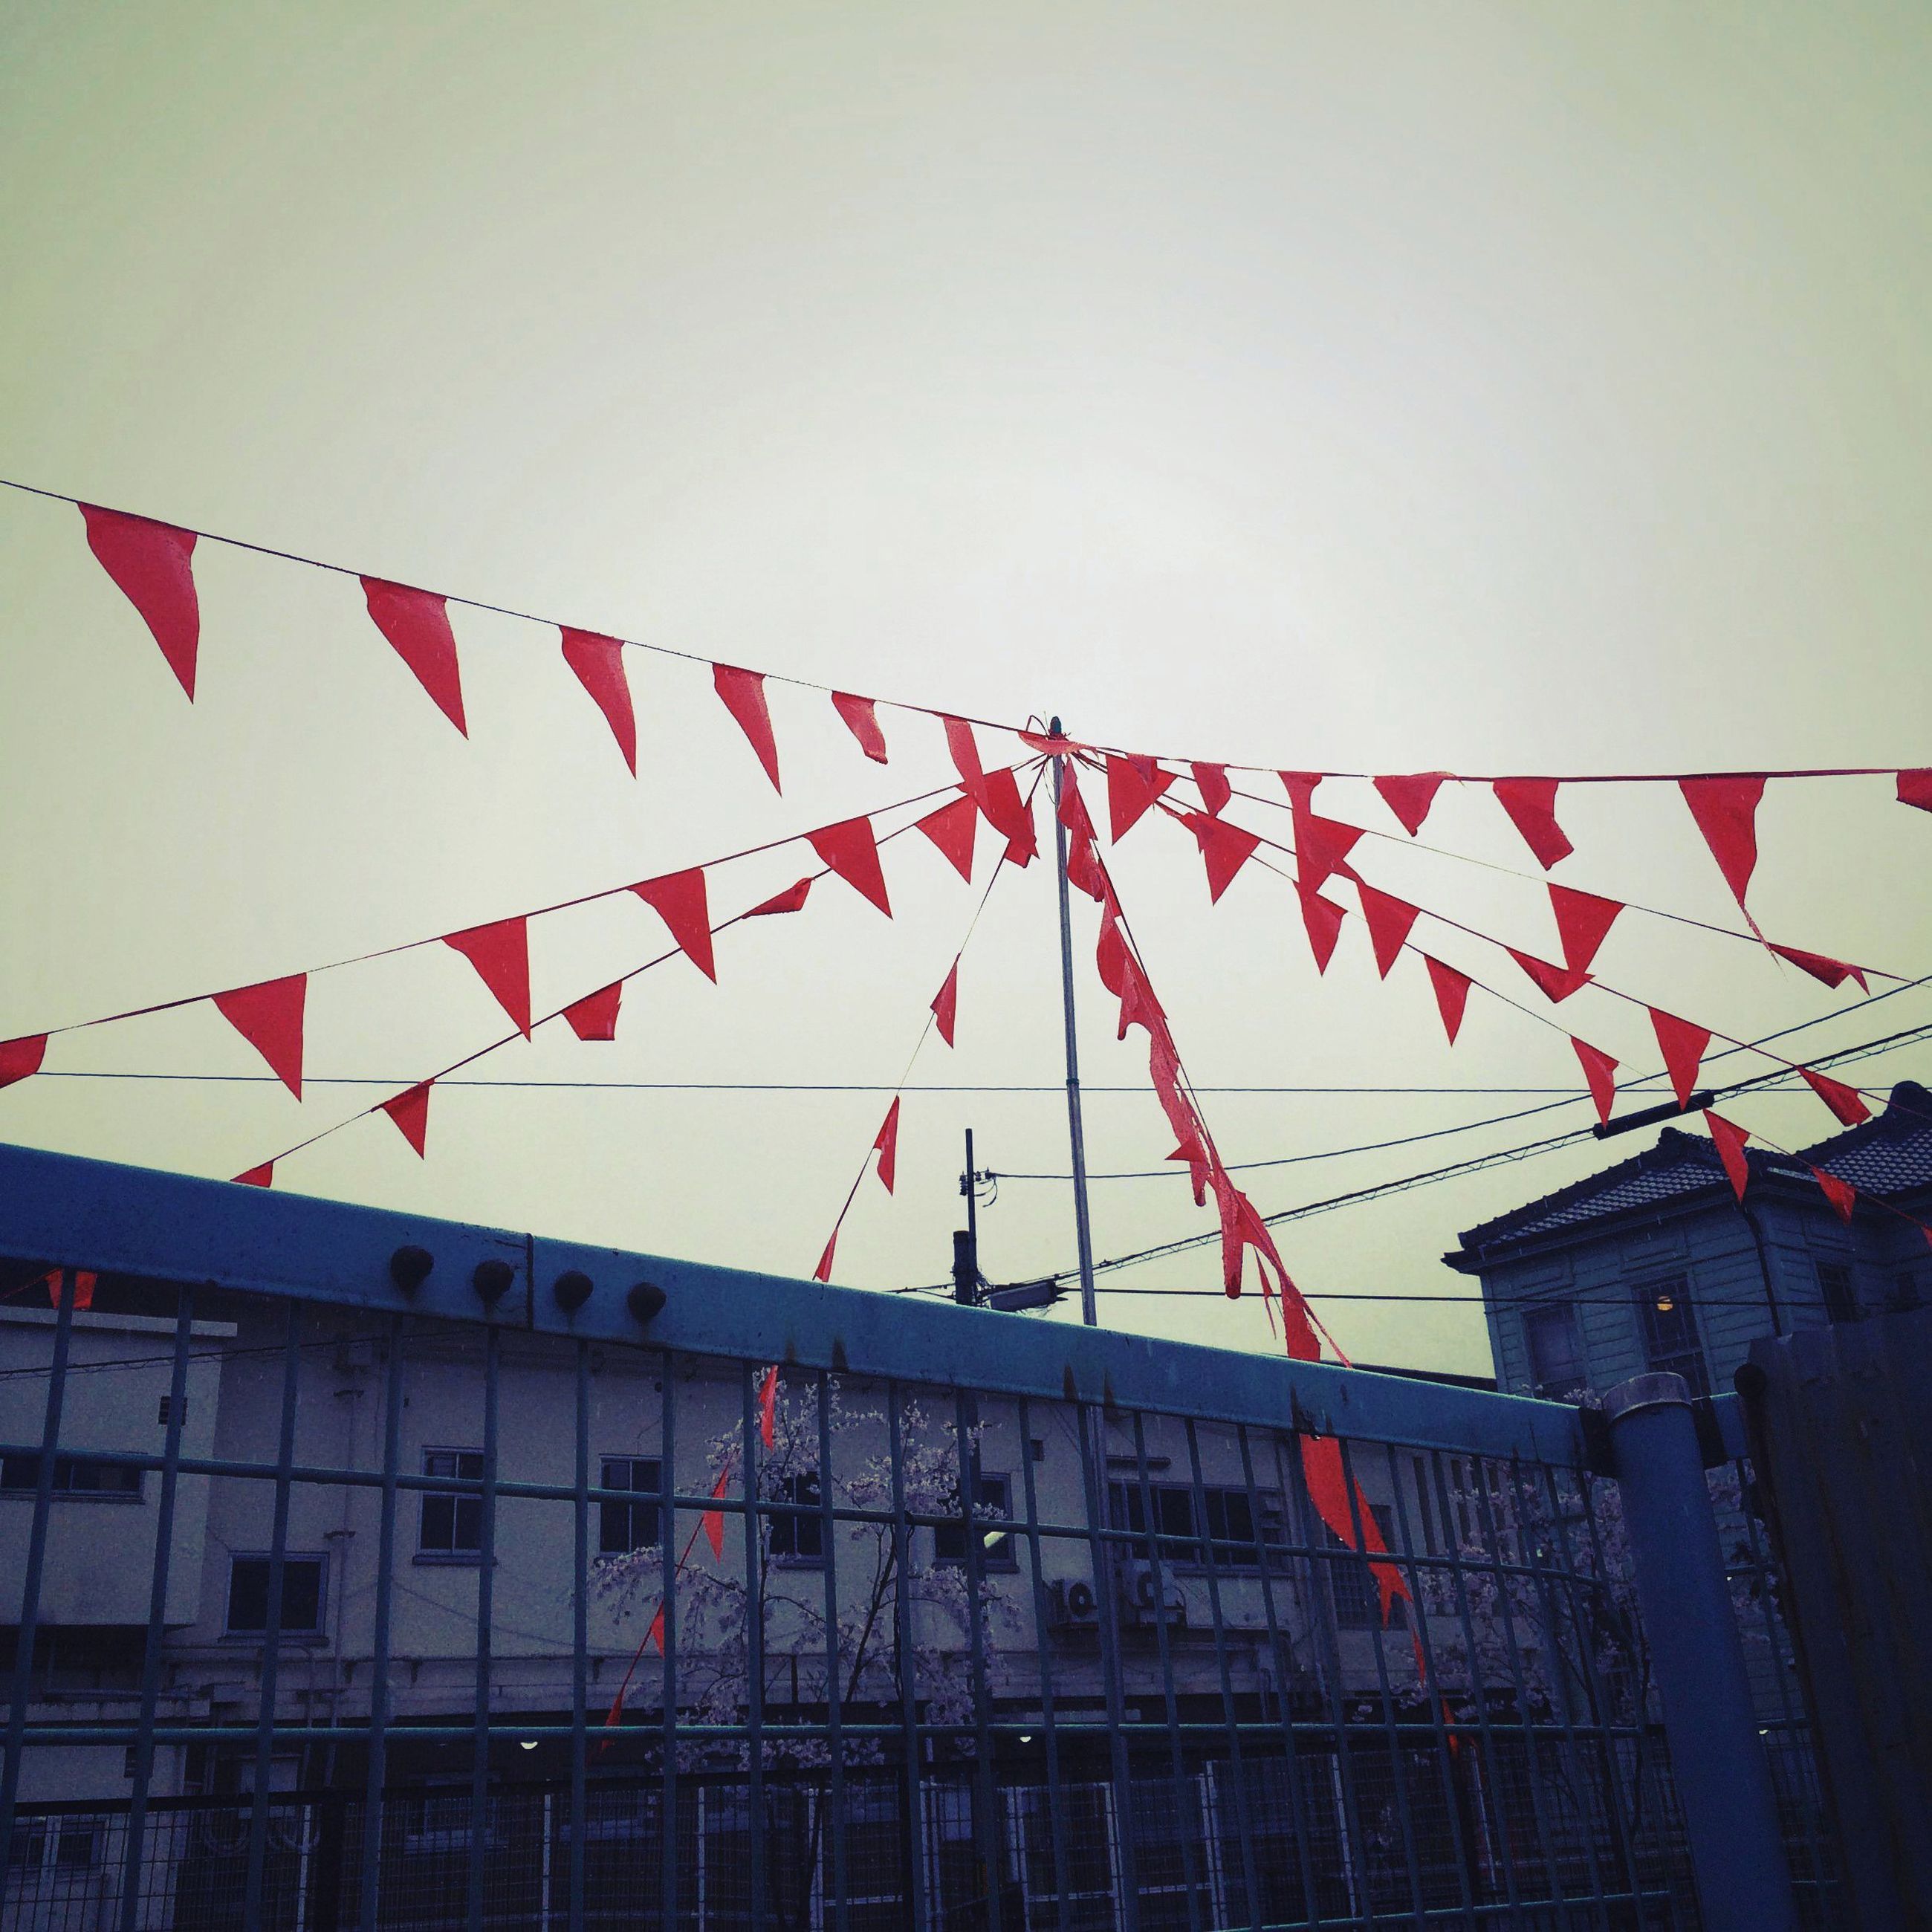 architecture, building exterior, built structure, low angle view, clear sky, flag, red, hanging, building, city, identity, national flag, patriotism, sky, outdoors, day, residential building, no people, residential structure, decoration